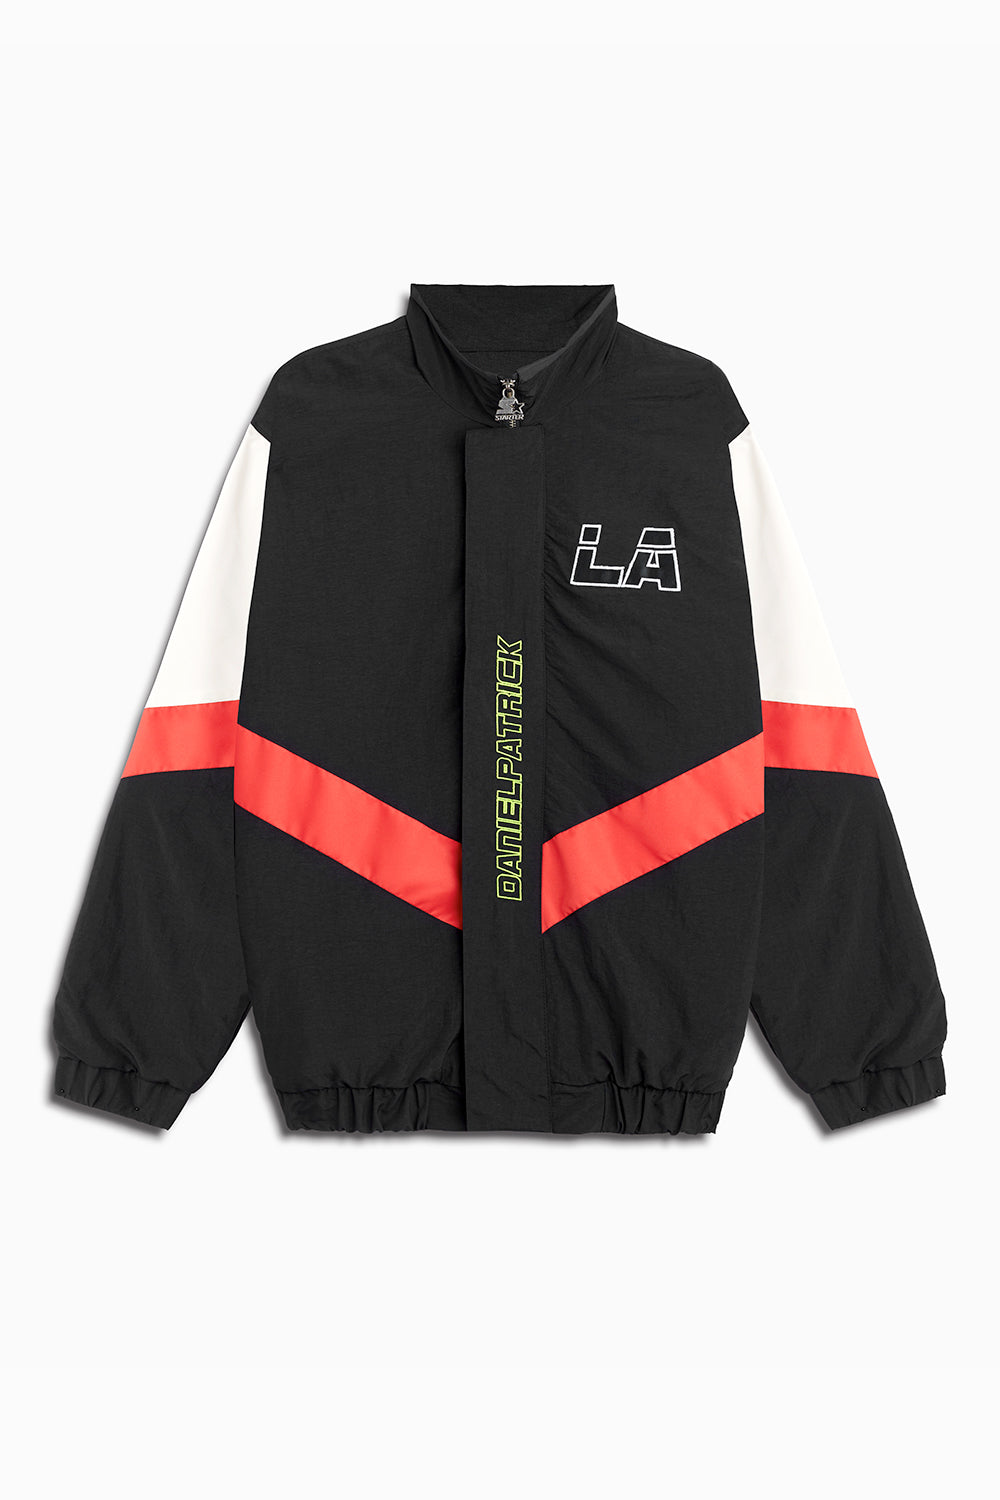 DP Starter LA team jacket in black/red/ivory by daniel patrick x starter